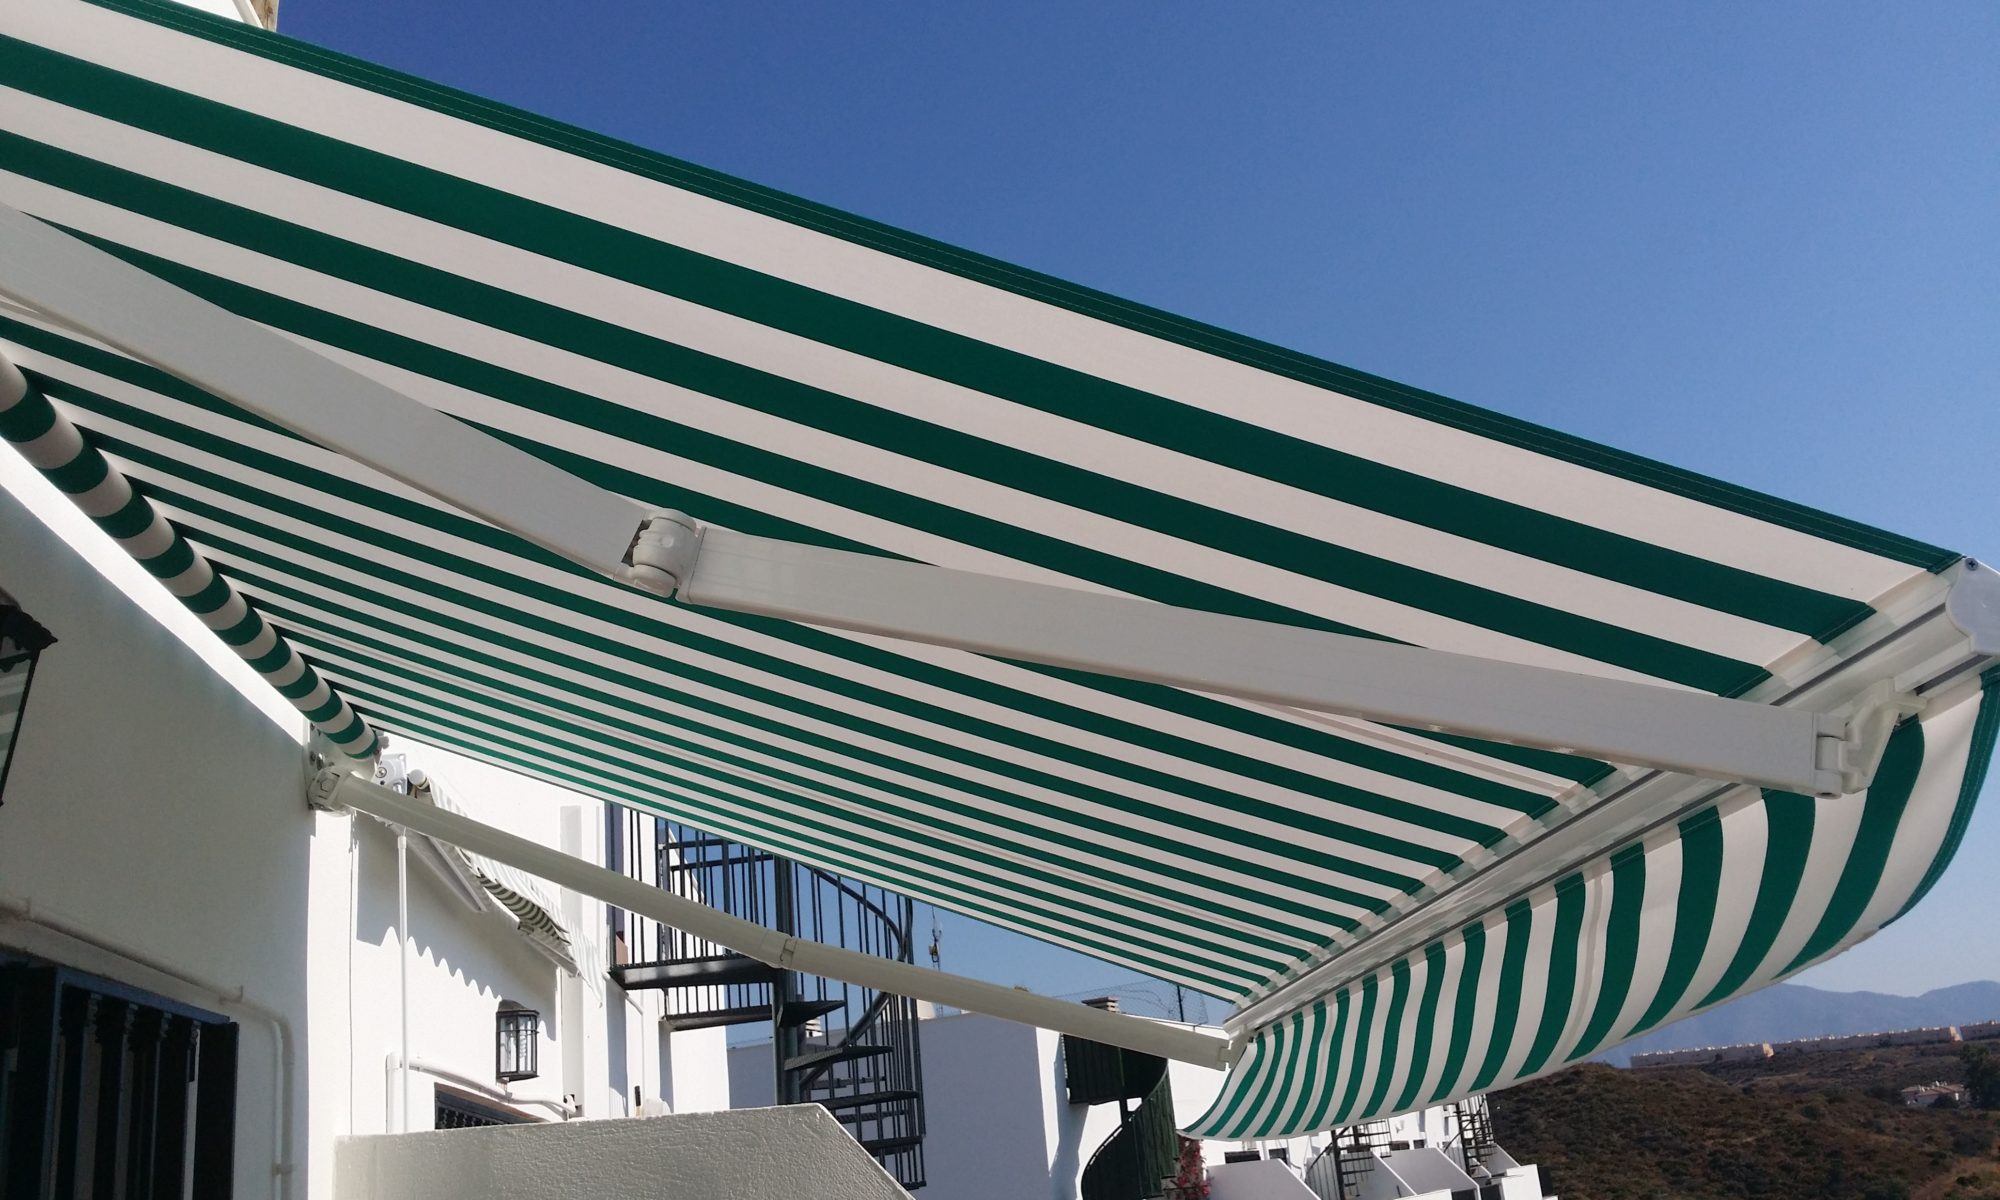 strong that sails constructed waterproof and is from shade durable heavy making residential both ltd duty awning sun solutions awnings pvc